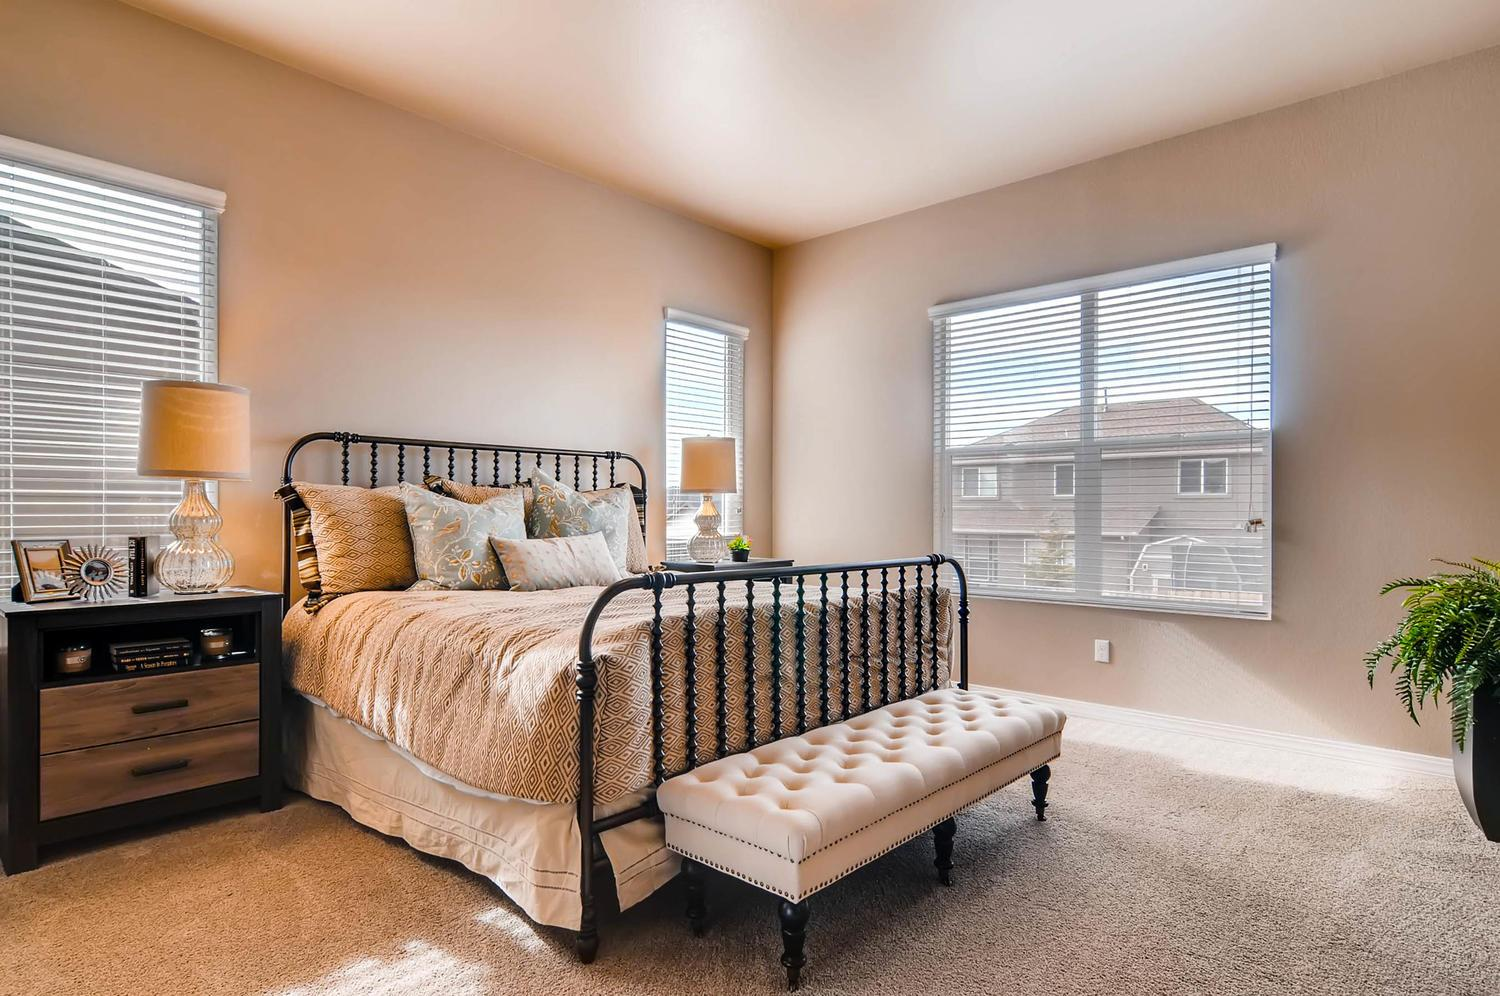 Bedroom featured in the San Isabel II By Classic Homes in Colorado Springs, CO